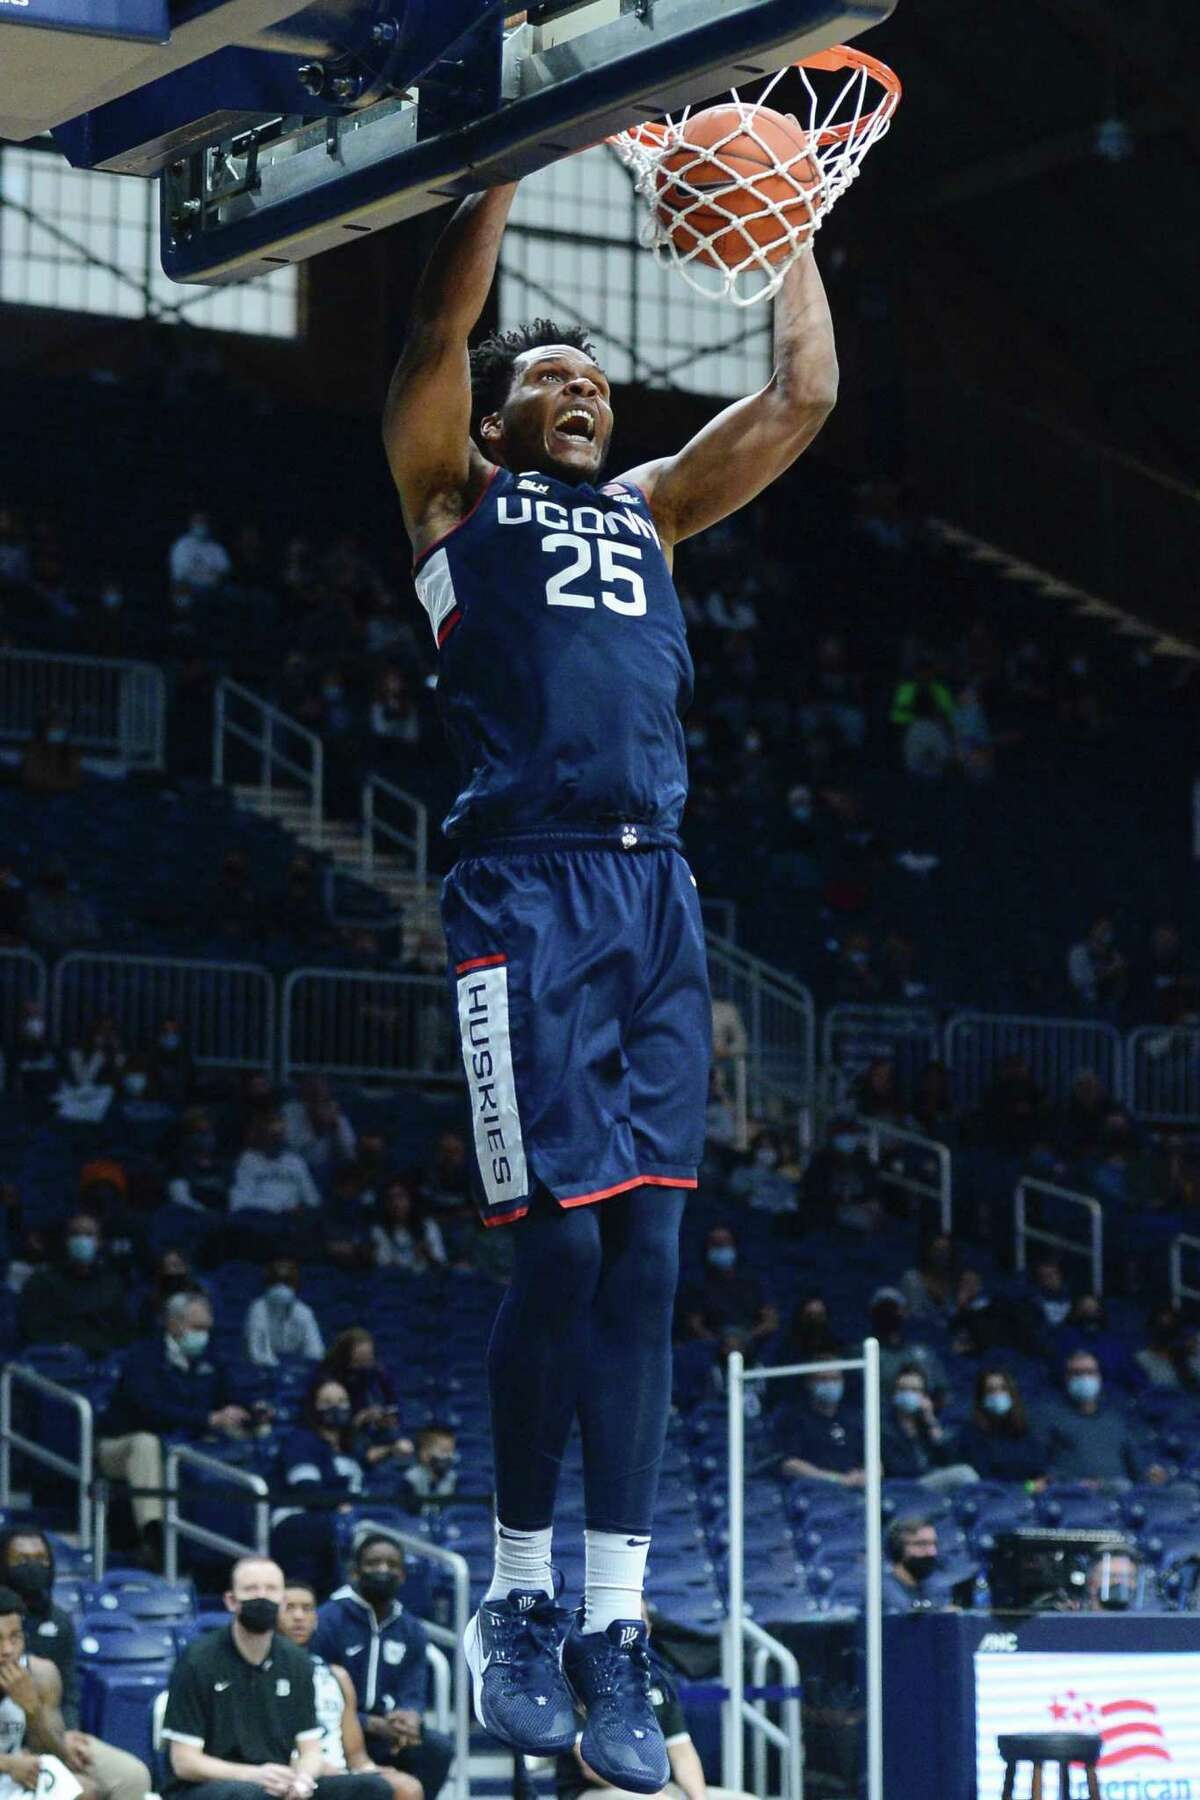 UConn's Josh Carlton dunks against Butler on Saturday.